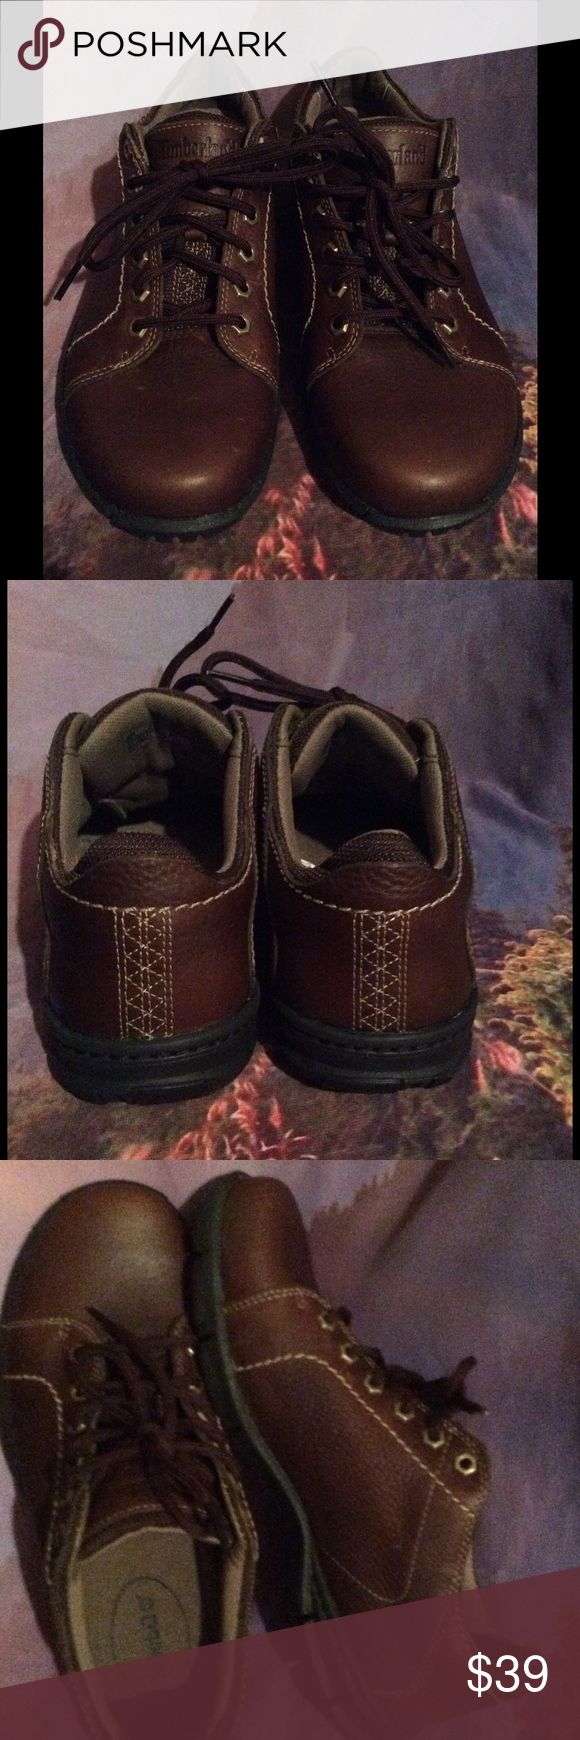 Men's Timberland brown oxfords shoes For work or a casual weekend!! Super cool Timberland shoes! Excellent condition Timberland Shoes